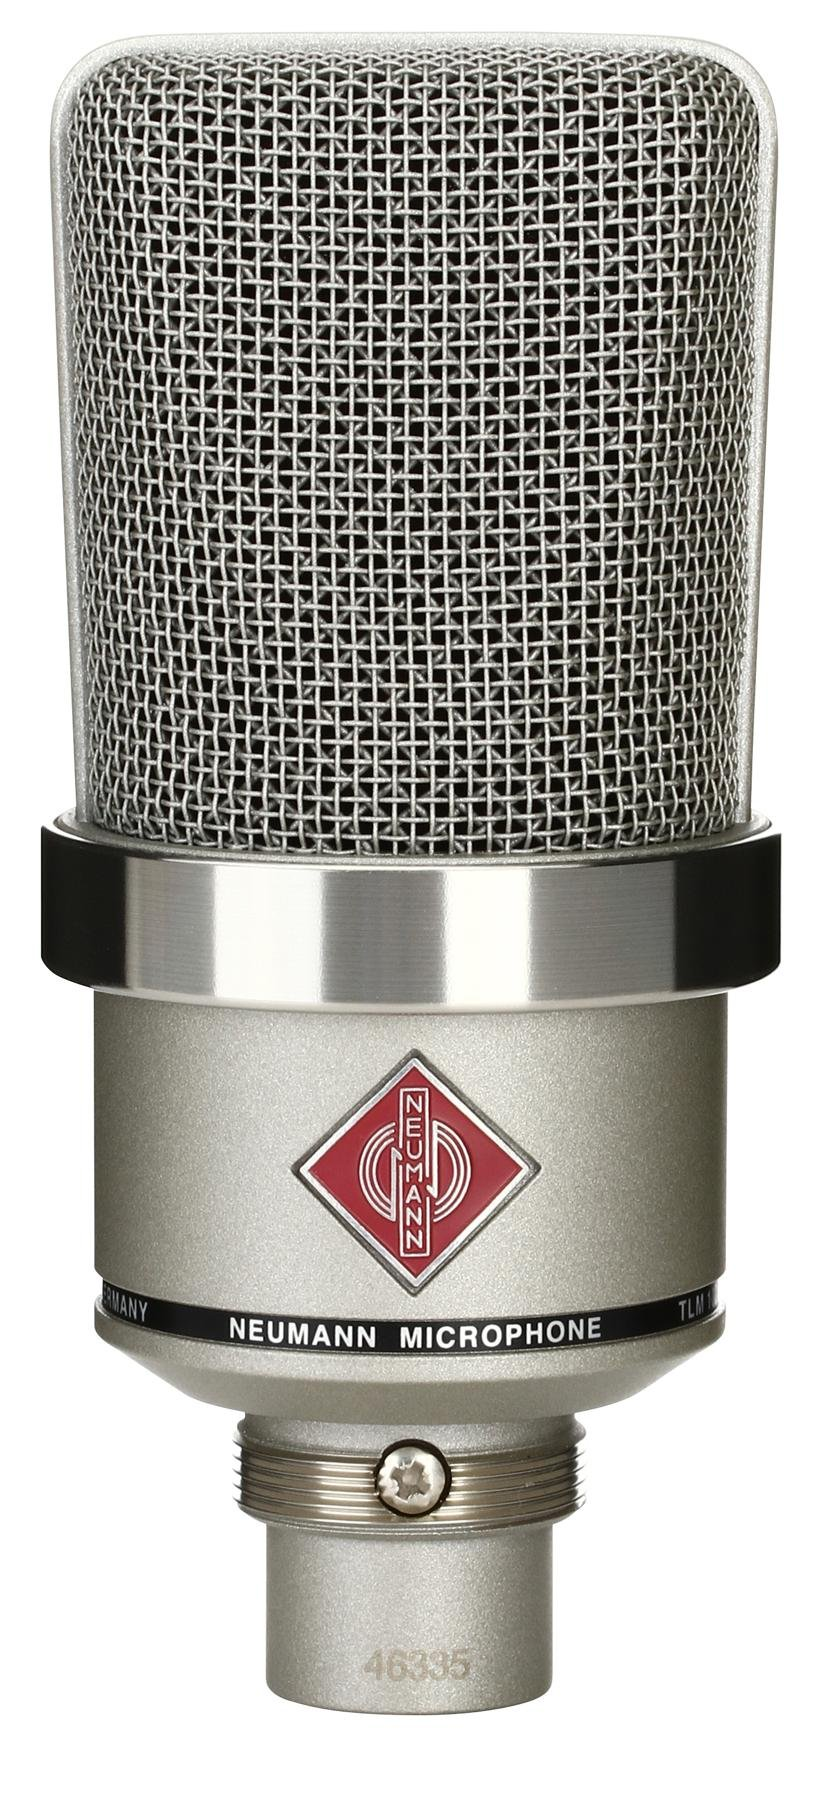 Neumann Tlm 102 Large Diaphragm Condenser Microphone Nickel Circuit Writer Tm Pinterest Image 1